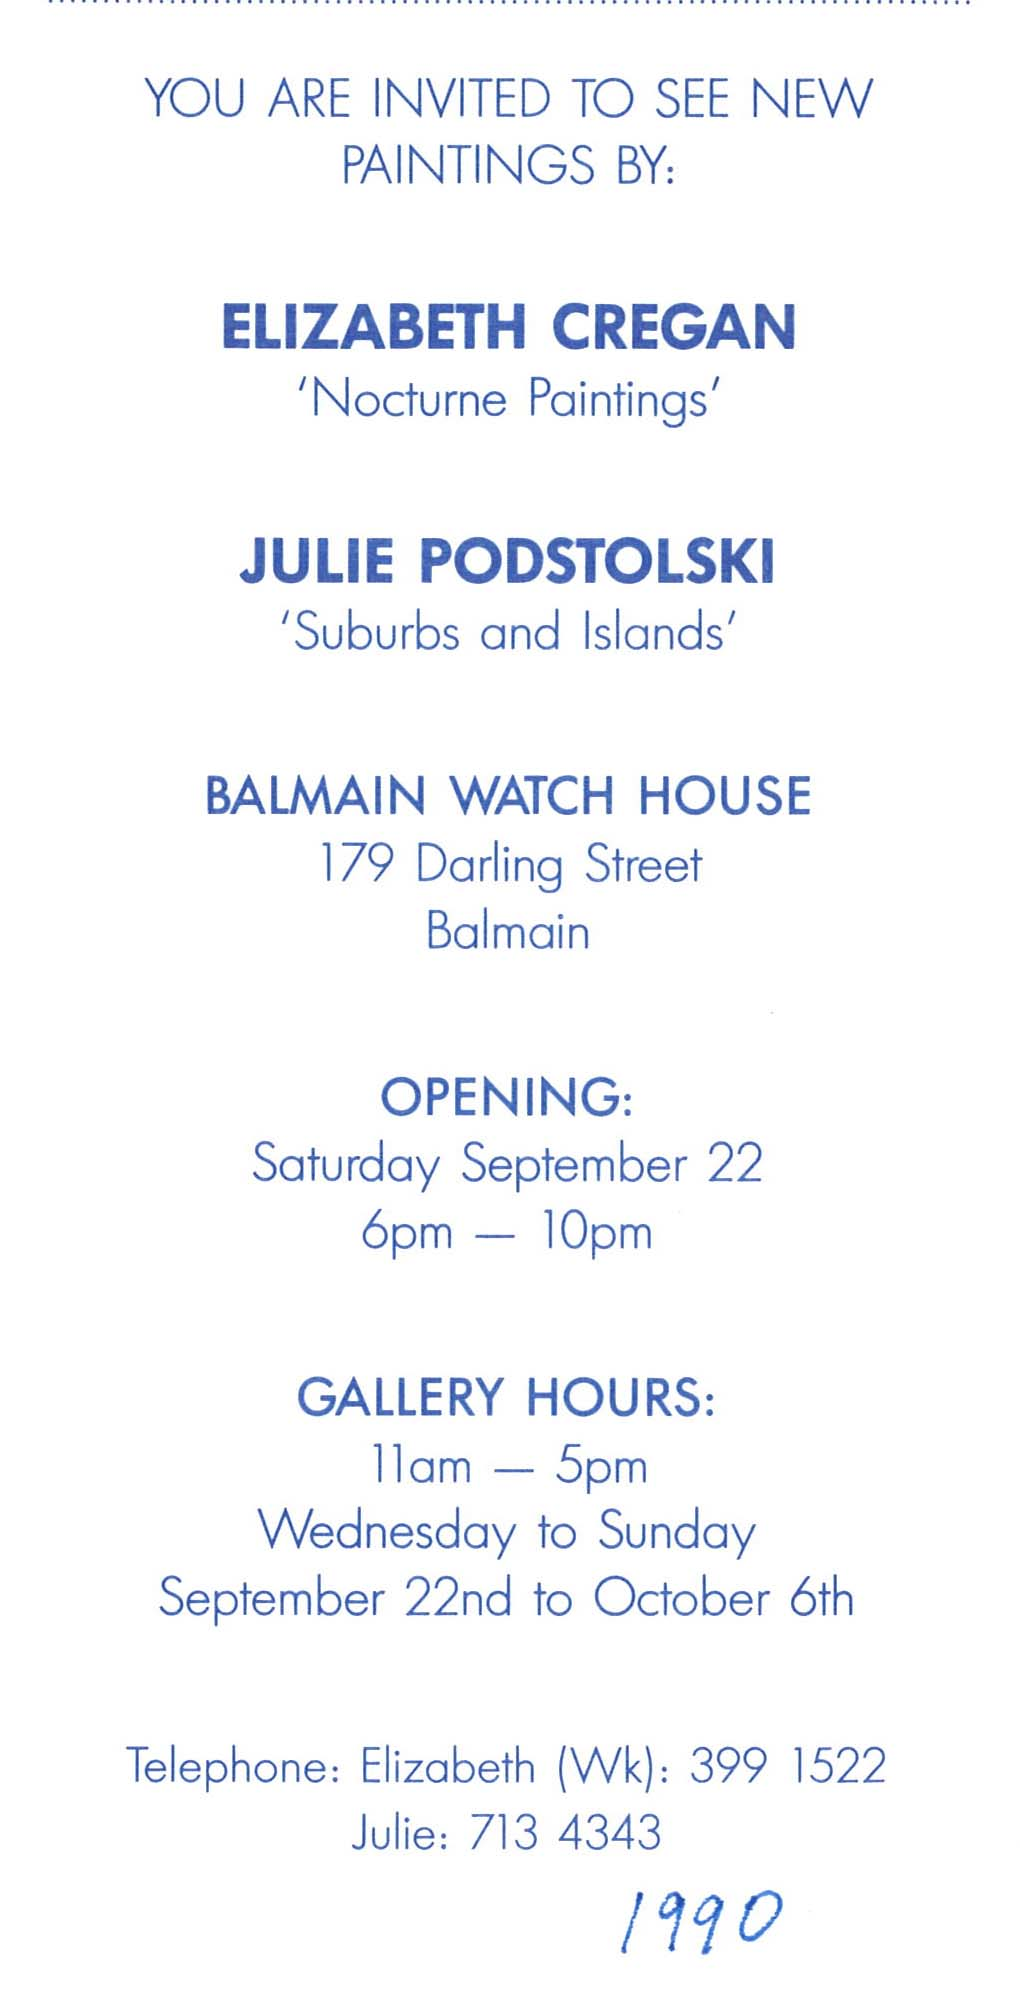 Archive of exhibition invitations julie podstolski abstract suburbs and islands oil paintings at balmain watch house sydney 1990 stopboris Choice Image